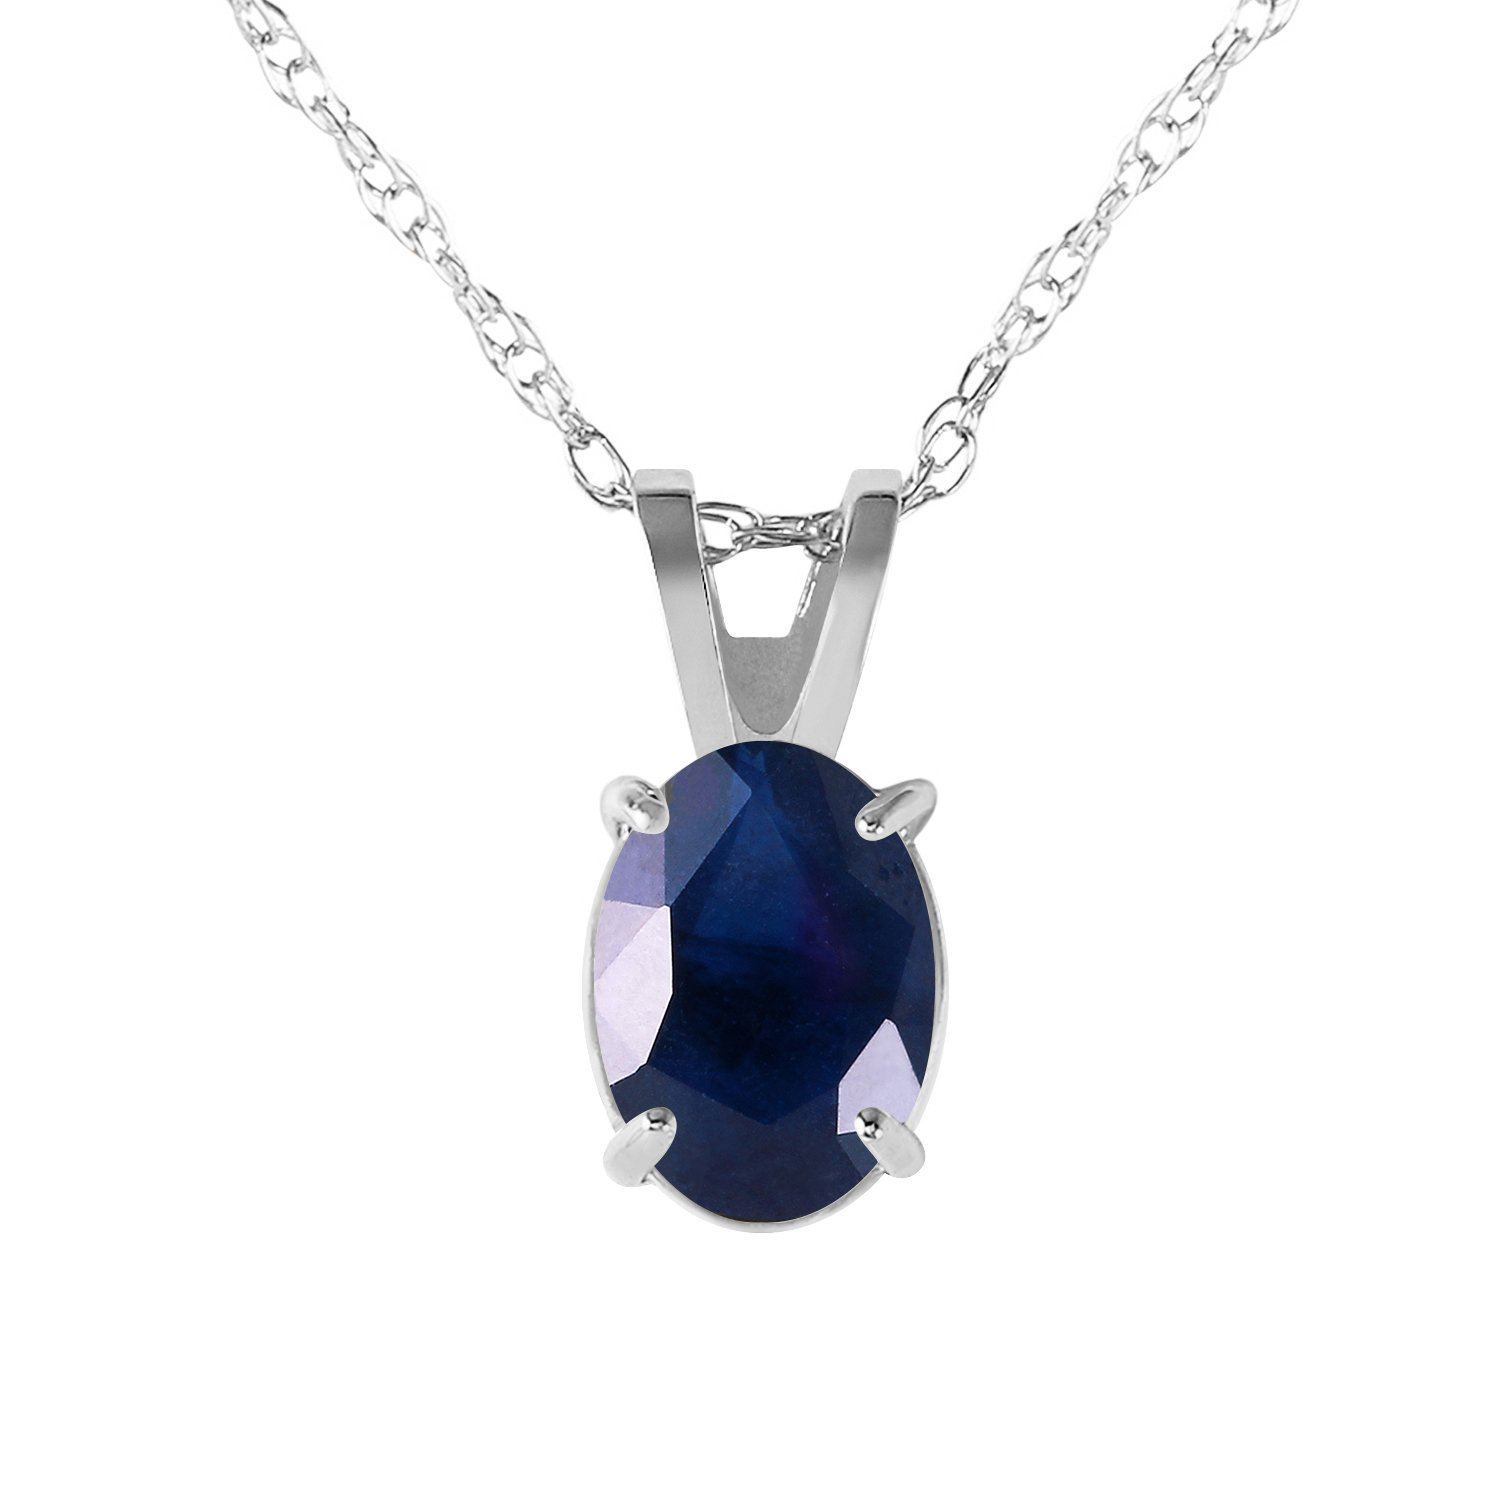 1 Carat 14k 18'' Solid White Gold Oval-shaped Natural Sapphire Pendant Necklace